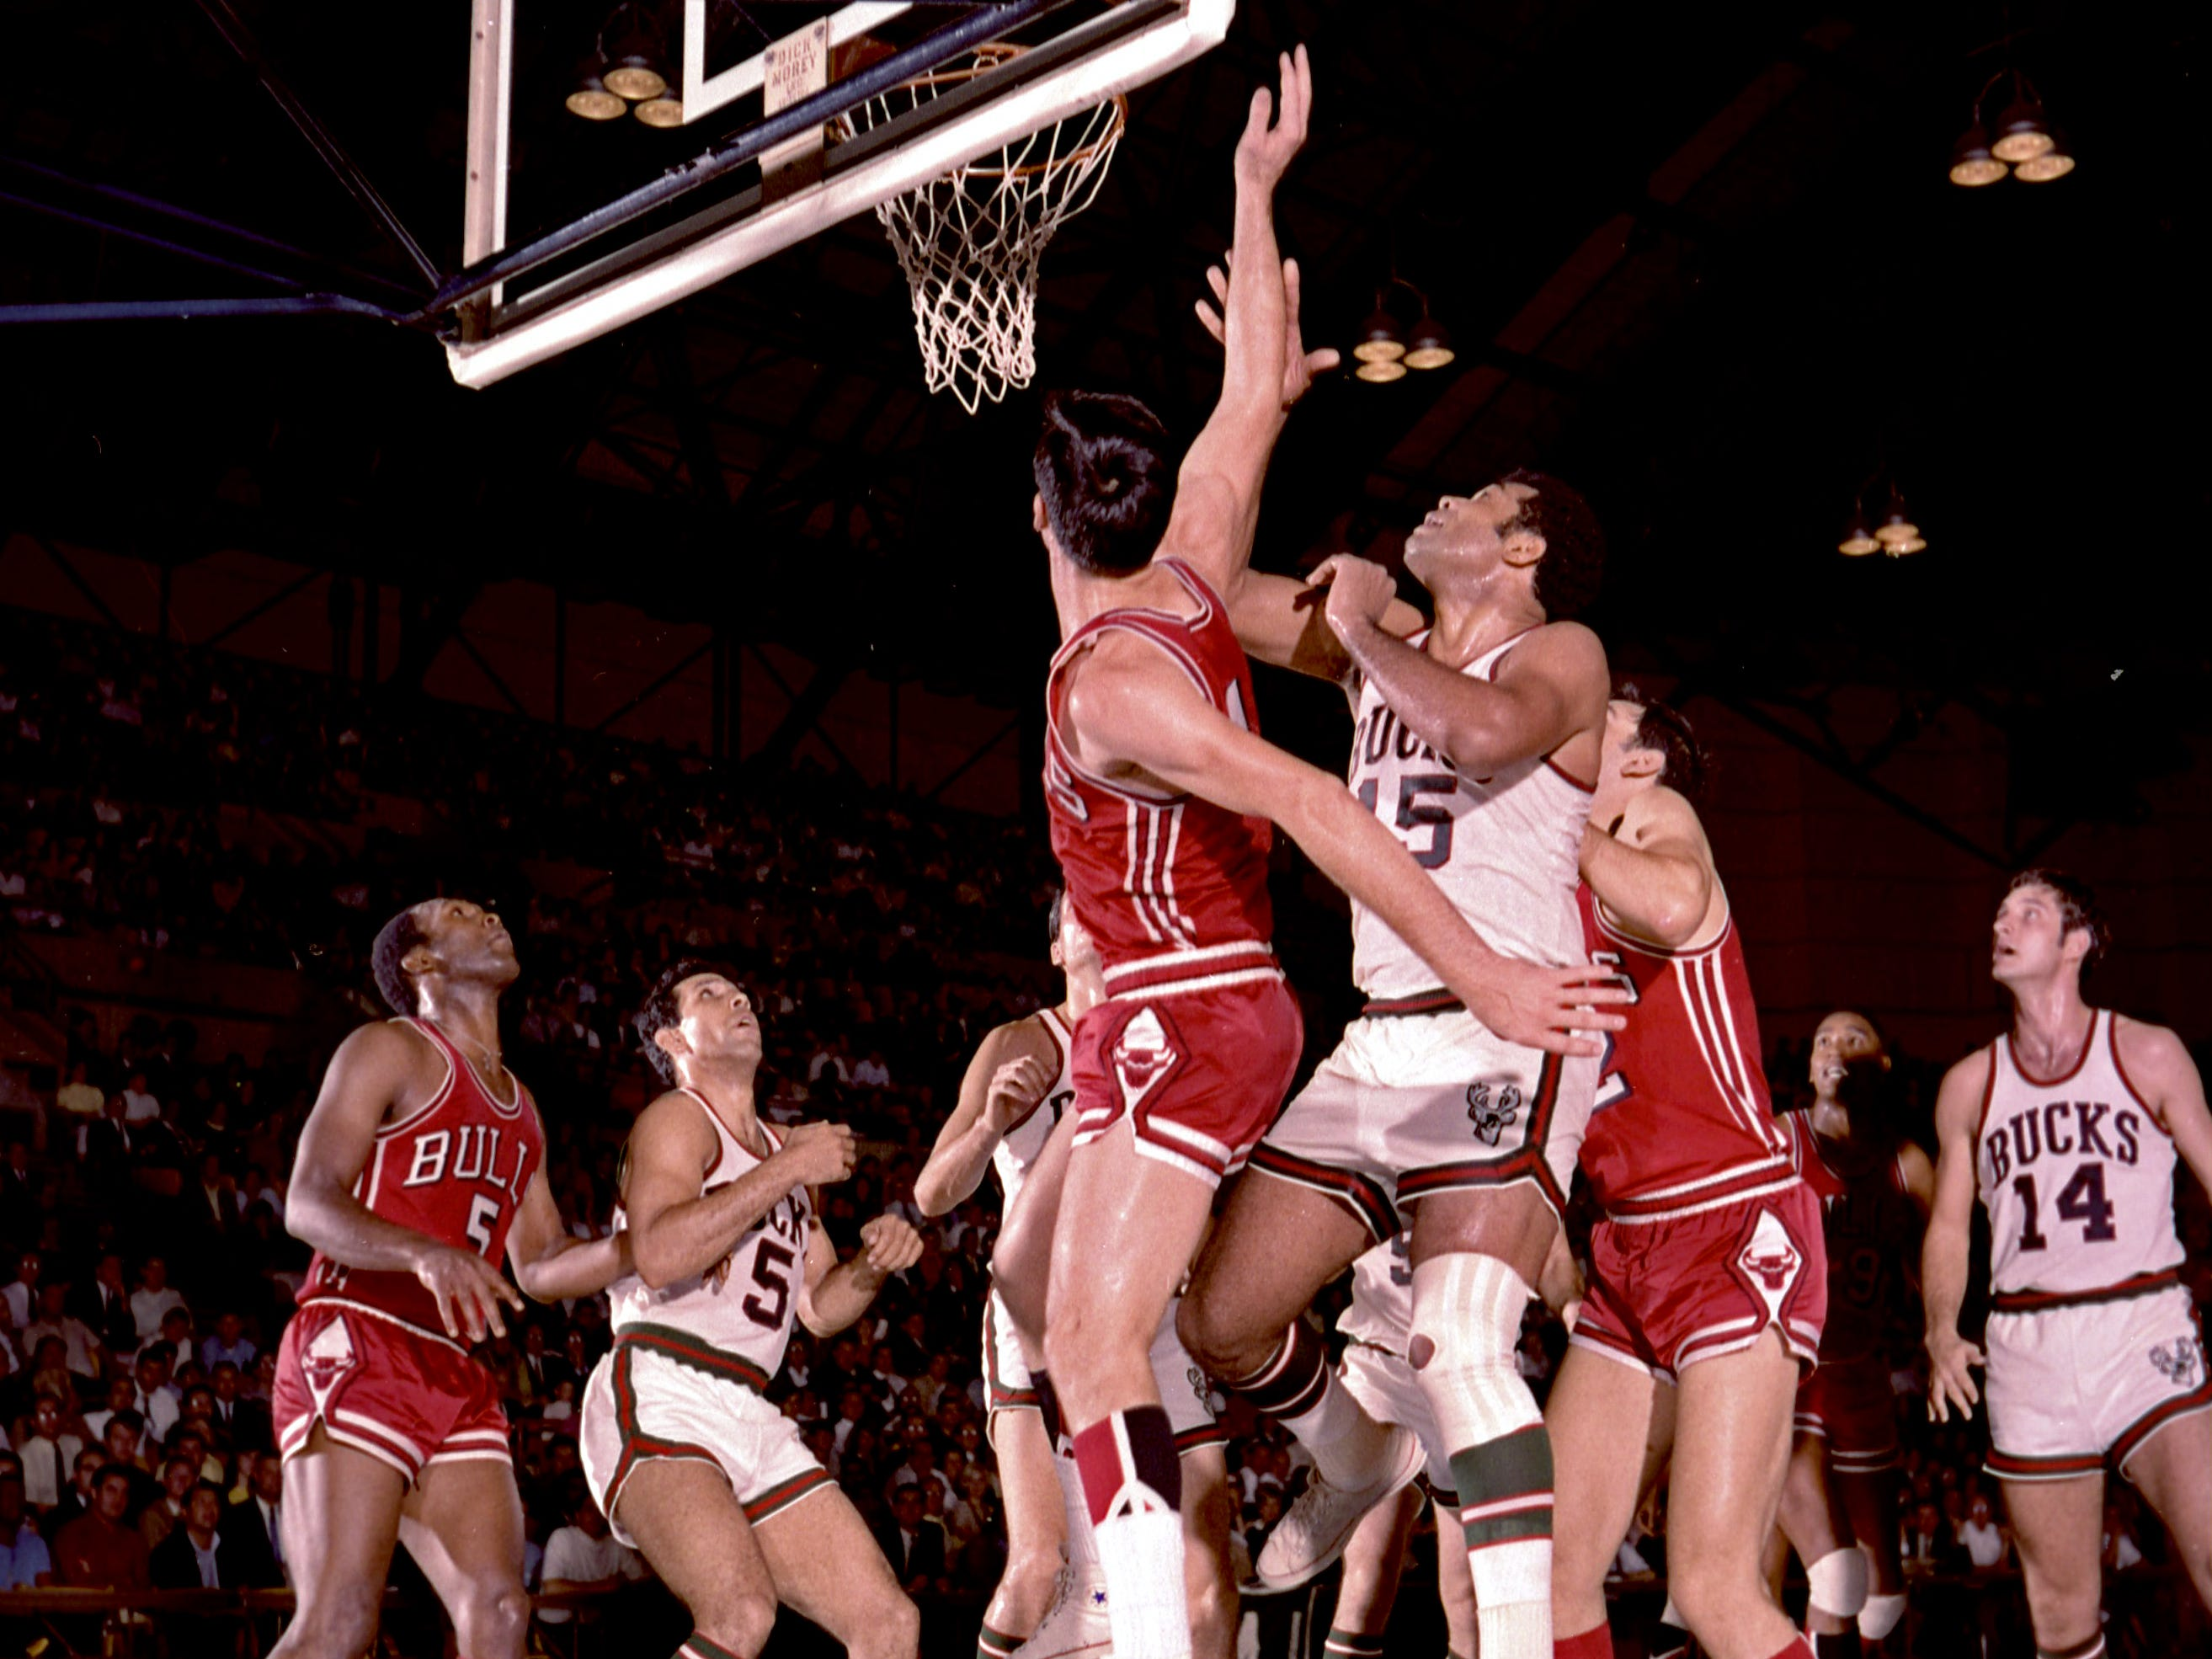 The lane gets pretty crowded during the first-ever Milwaukee Bucks' regular season game against the Chicago Bulls at the Milwaukee Arena on Oct. 16, 1968. Among the players in the mix are the Bulls' Flynn Robinson (5), Bucks' Guy Rodgers (5), Bucks center Wayne Embry (15) and Bucks guard Jon McGlocklin (14).